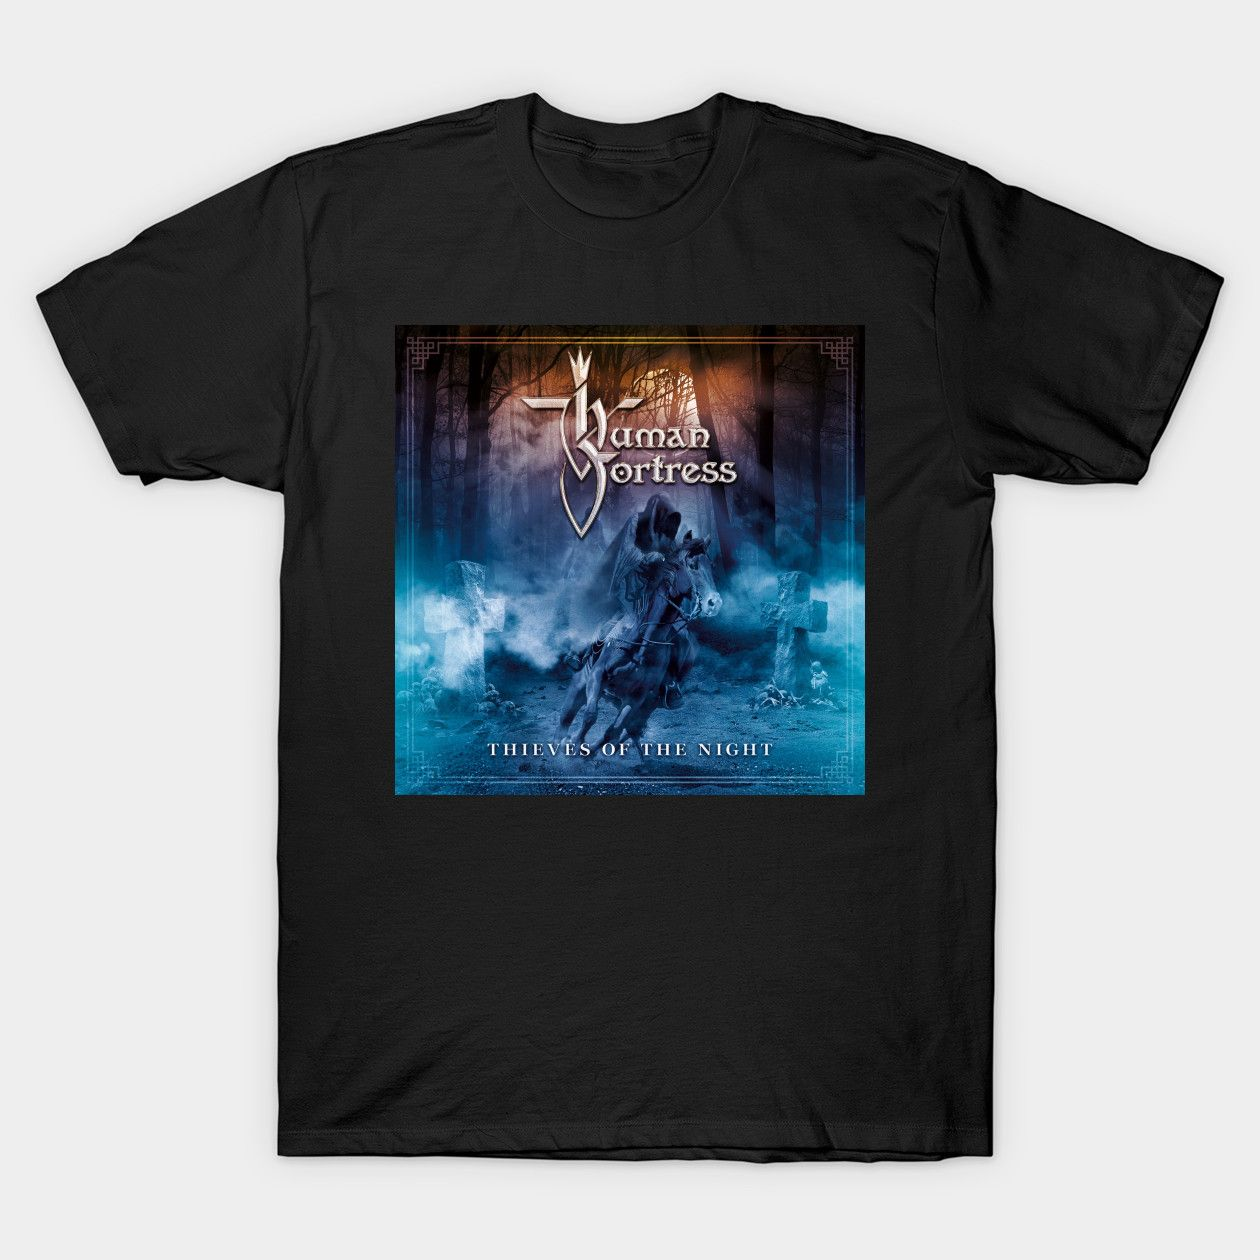 Human Fortress Thieves Of The Night Heavy Metal Classic Shirts